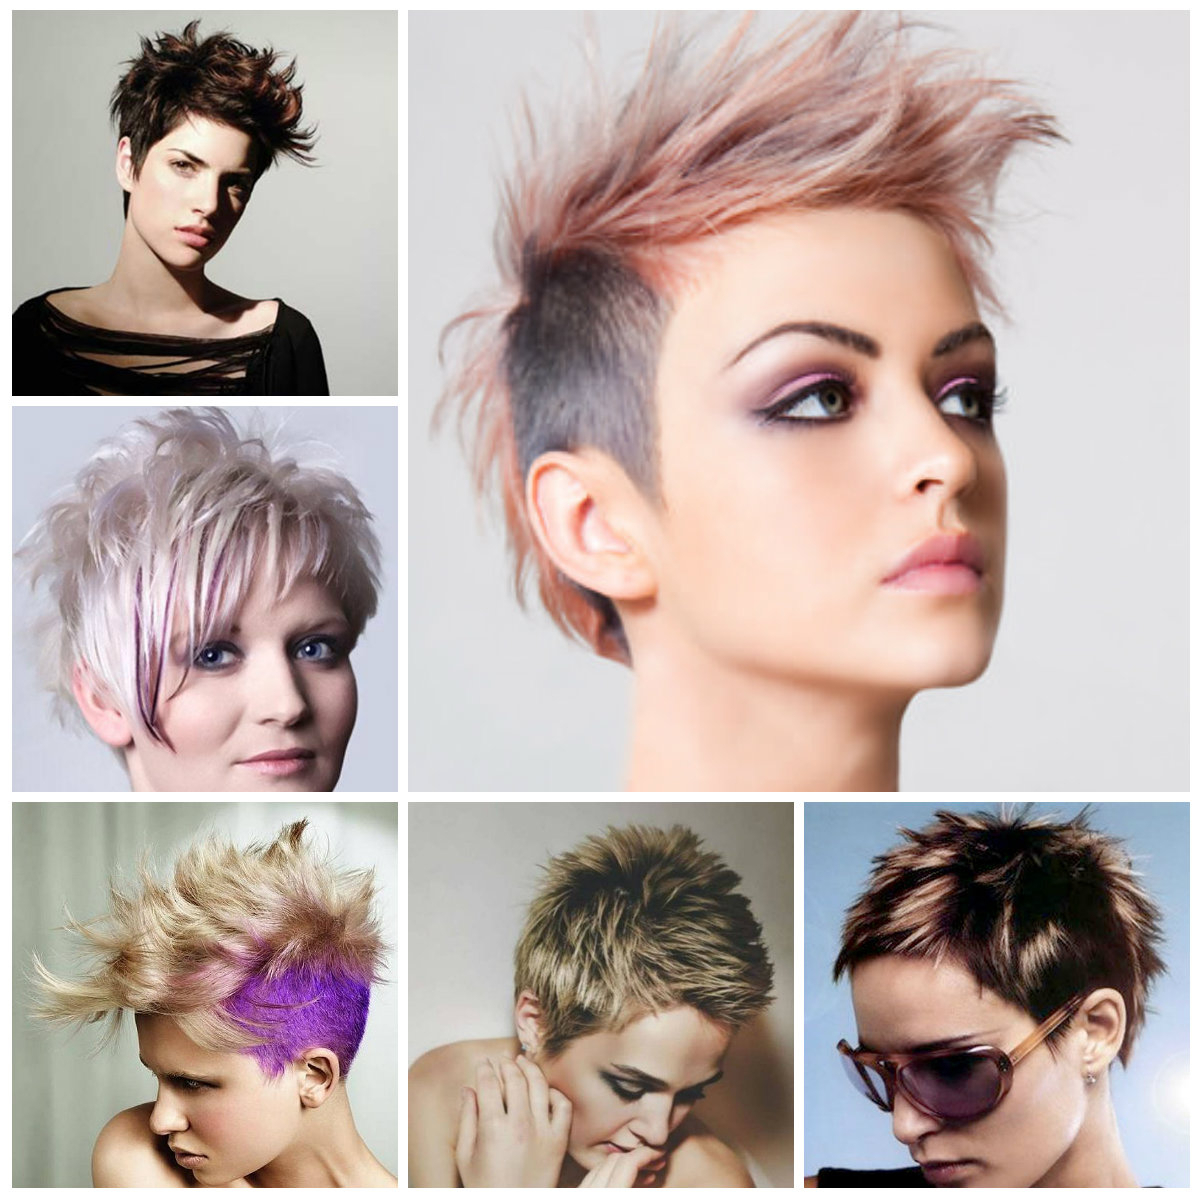 2019 Trendy Short Spiky Hairstyles For Women | Hairstyles For Women With Regard To Two Tone Spiky Short Haircuts (View 13 of 20)